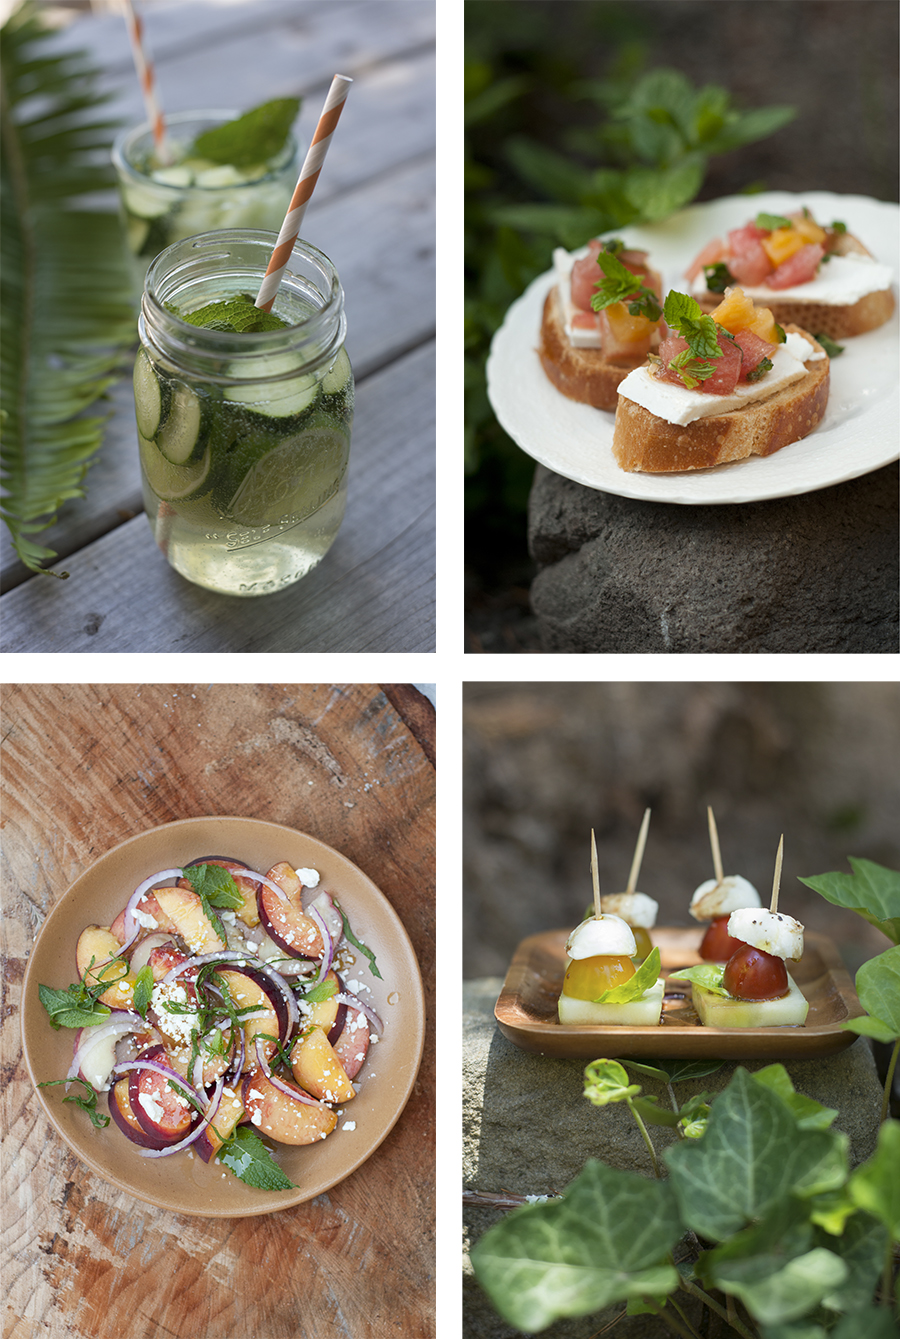 It's officially SUMMER! Out here in the woods, we are gearing up for some outdoor entertaining. Here are some Forest Feast favorites from summers past to get you going with your summer menu planning:    Cucumber Sangria      Watermelon Bruschetta      Peach Salad      Cucumber Caprese Bites    ALSO! There are a few more California Forest Feast cookbook events coming up in the Bay Area:  Tonight! June 25th in Santa Cruz,  7pm Bookshop Santa Cruz   Tomorrow! June 26th In Oakland,  6-8pm at Umami Mart   July 14th: A special dinner event at  18 Reasons in SF (tix here)   Aug. 9th in Healdsburg at  SHED  (workshop at 12pm & signing at 1:30pm)  More info here:  theforestfeast.com/cookbook  Hope to see you then!